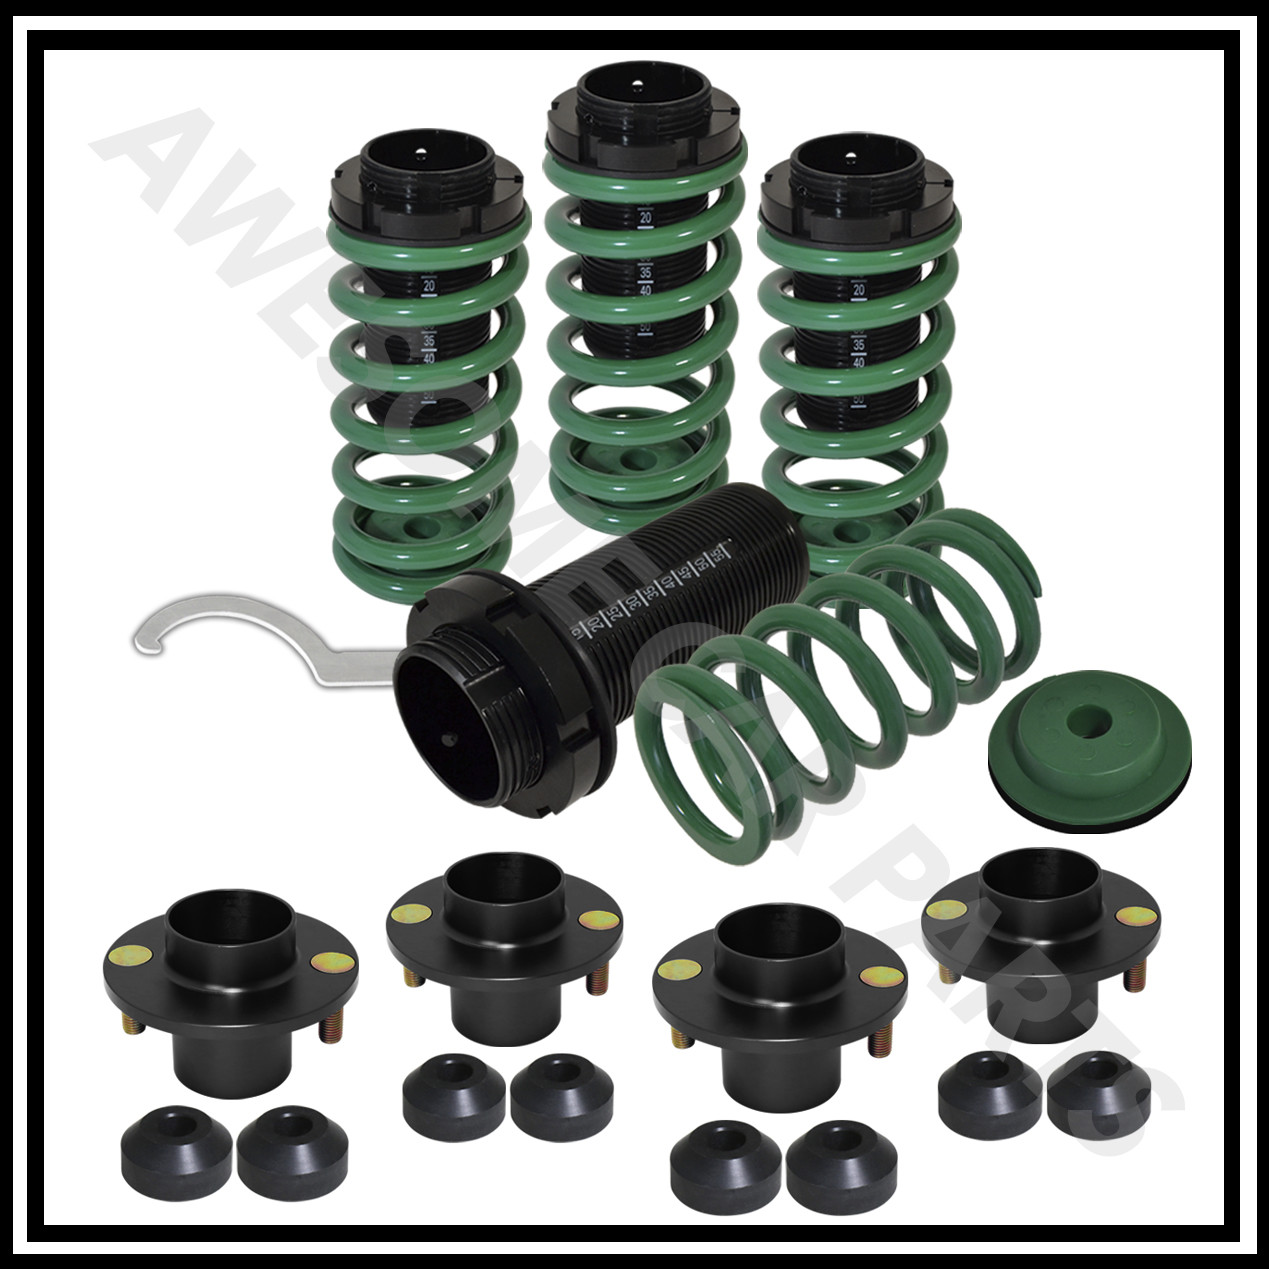 Coilover Top Hat: Green Coil Over Adjustable Spring Kit + Black Suspension